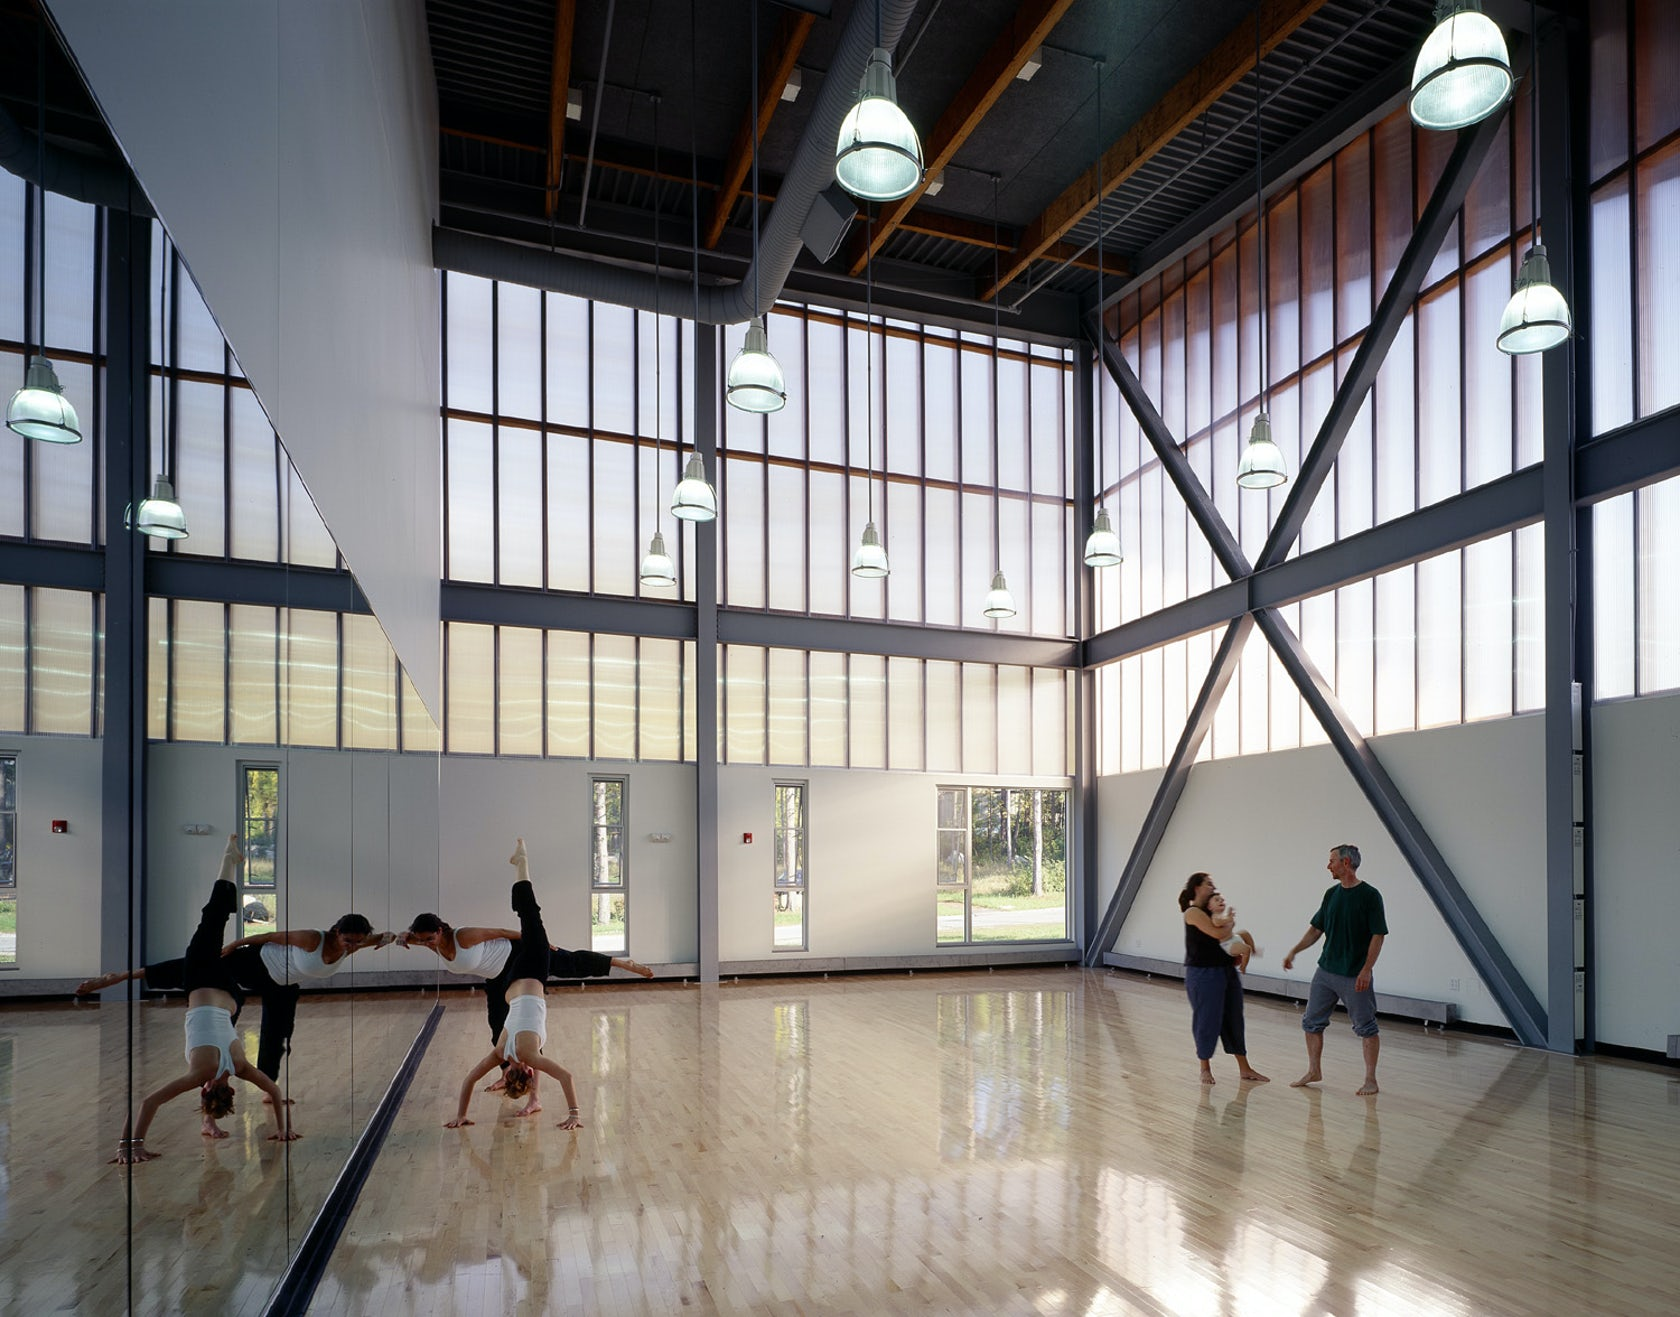 Bard college at simon 39 s rock daniel arts center architizer for Porte arts and dance studio